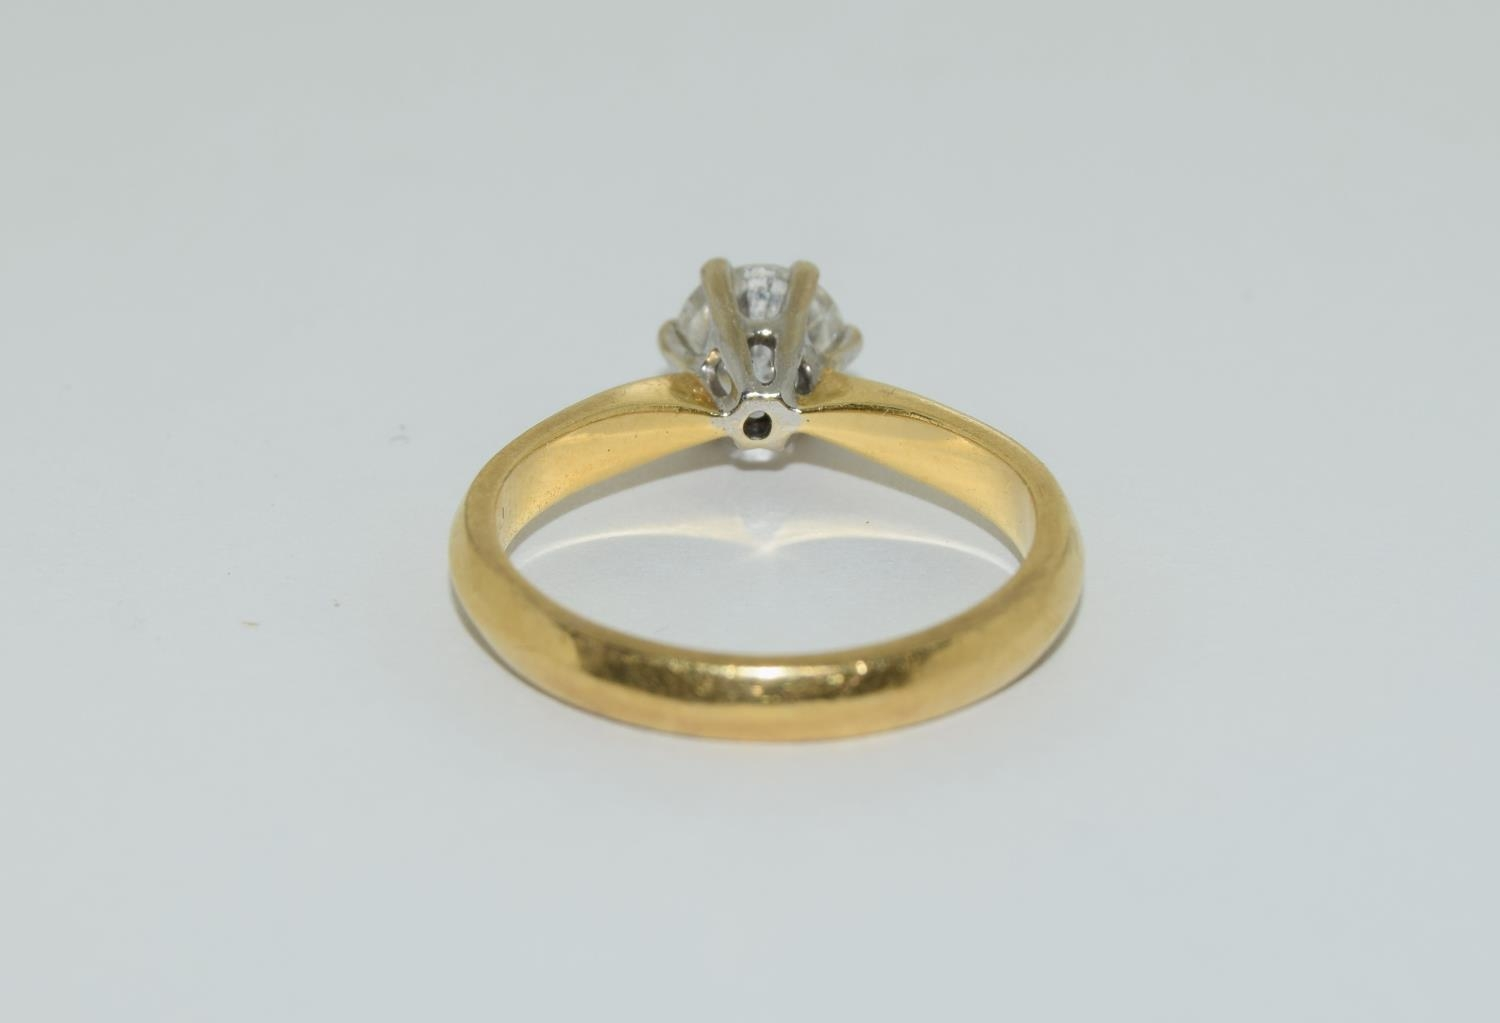 An 18ct white gold ladies diamond solitaire ring 0.75ct Approx., Size M. - Image 3 of 6